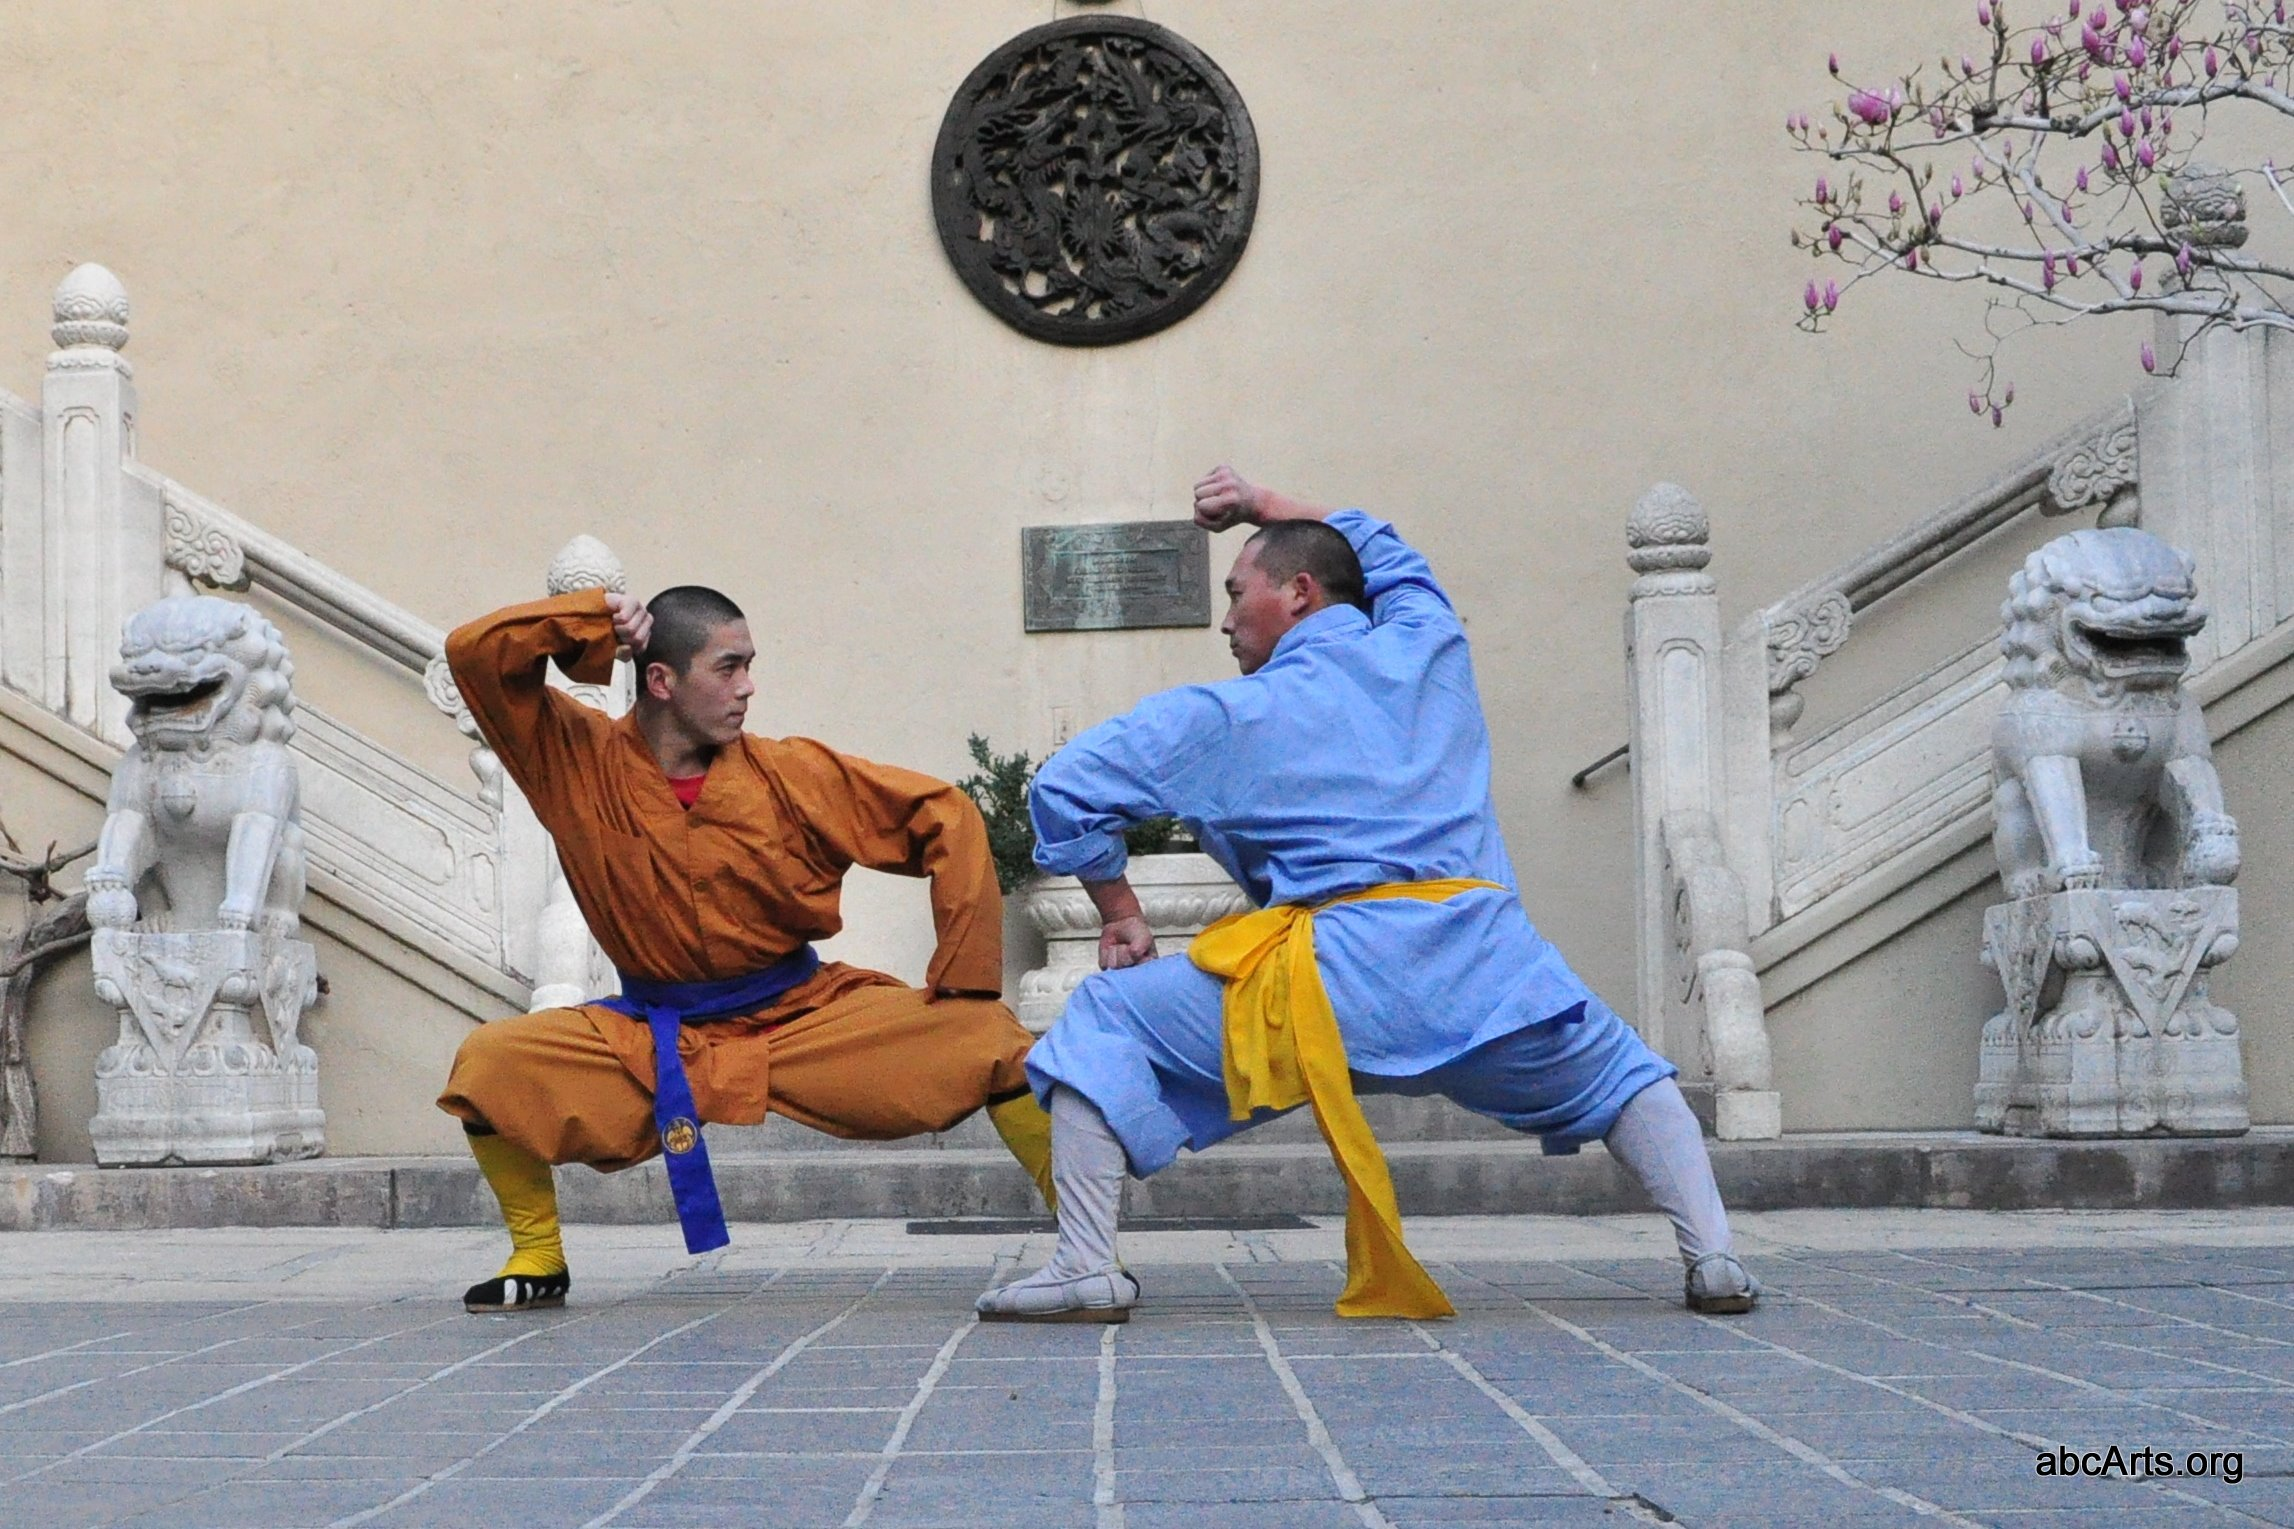 a report on martial arts in asia Martial arts originated in east asia more than 2,000 years ago and have since grown to about 200 individual types practiced by about 100 million people worldwide.